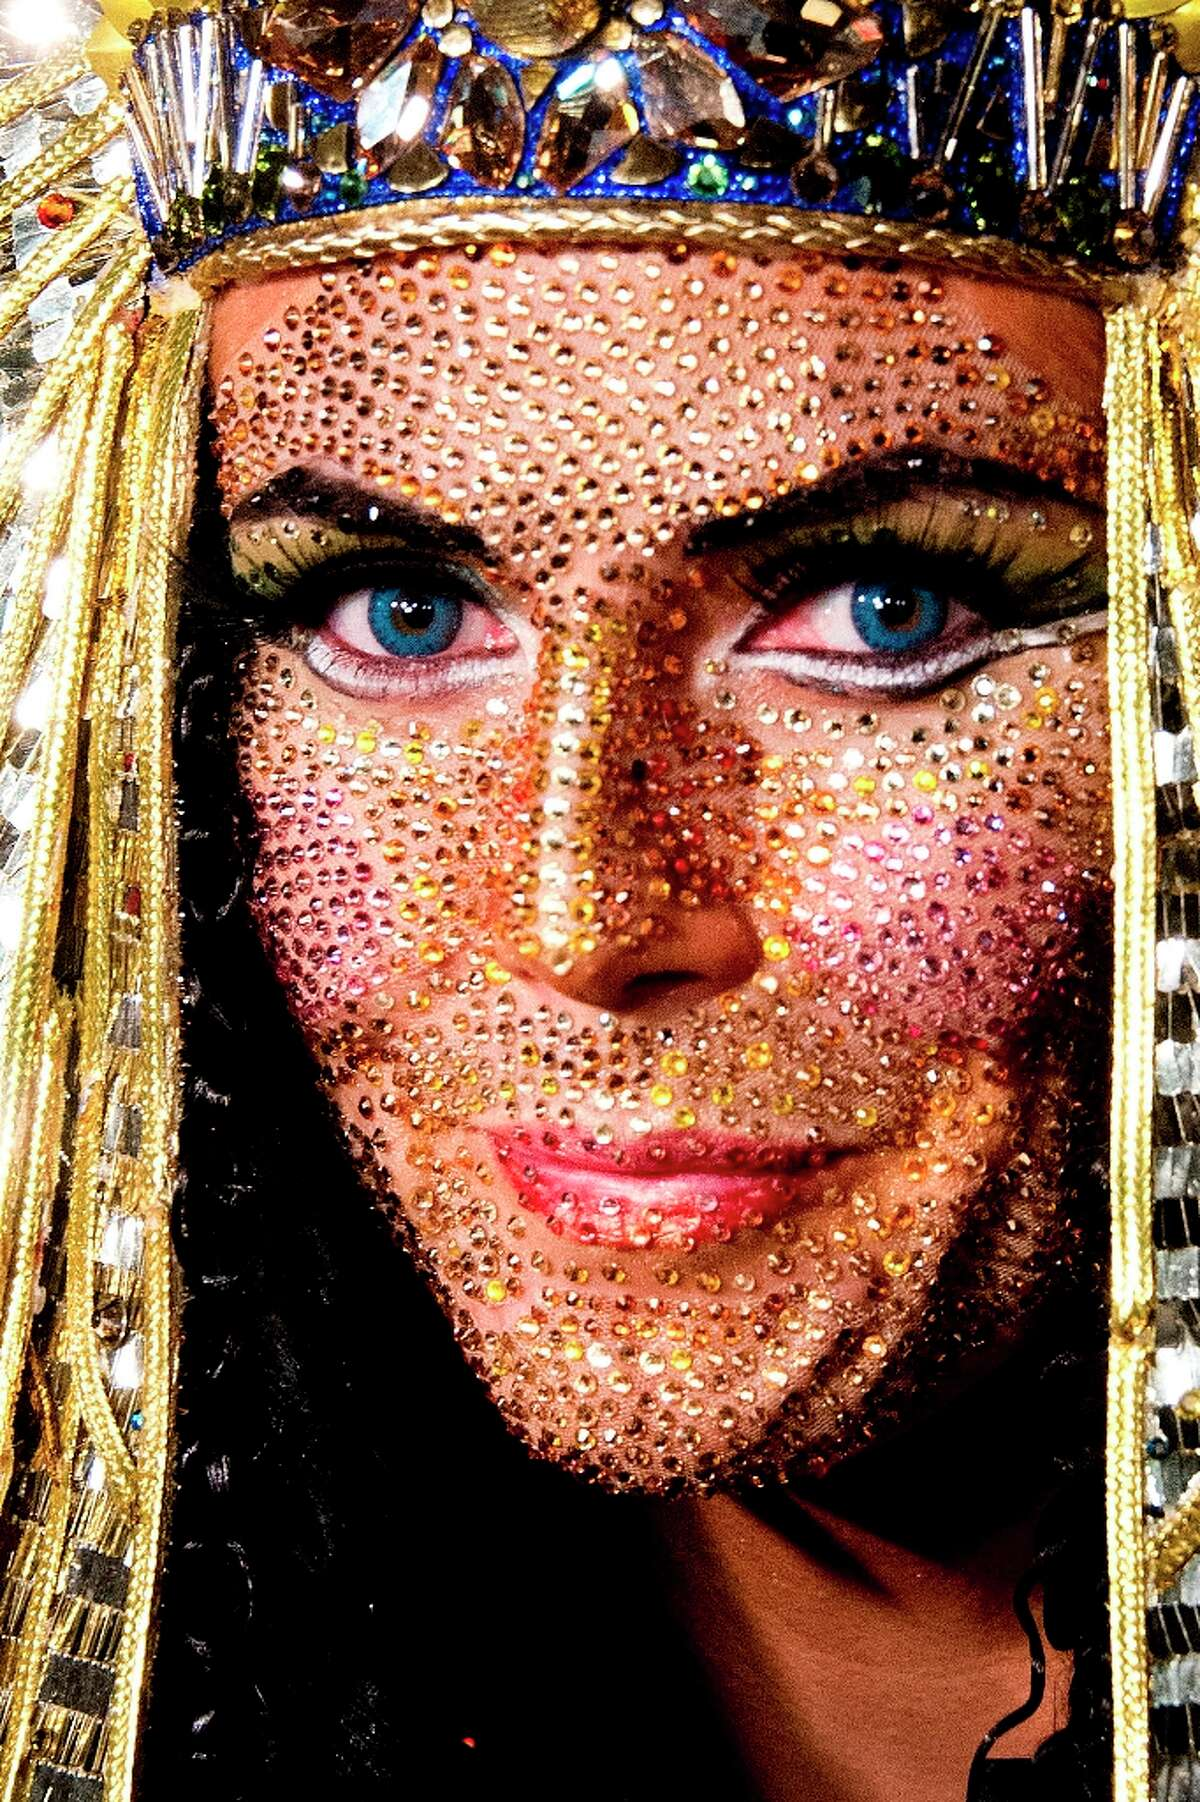 Heidi Klum shows off her jewel-encrusted face and Cleopatra costume during her Haunted Holiday Party benefiting Superstorm Sandy relief efforts, on Saturday, Dec. 1, 2012 in New York. Klum's original party, scheduled to be held on Halloween, was postponed due to the storm.